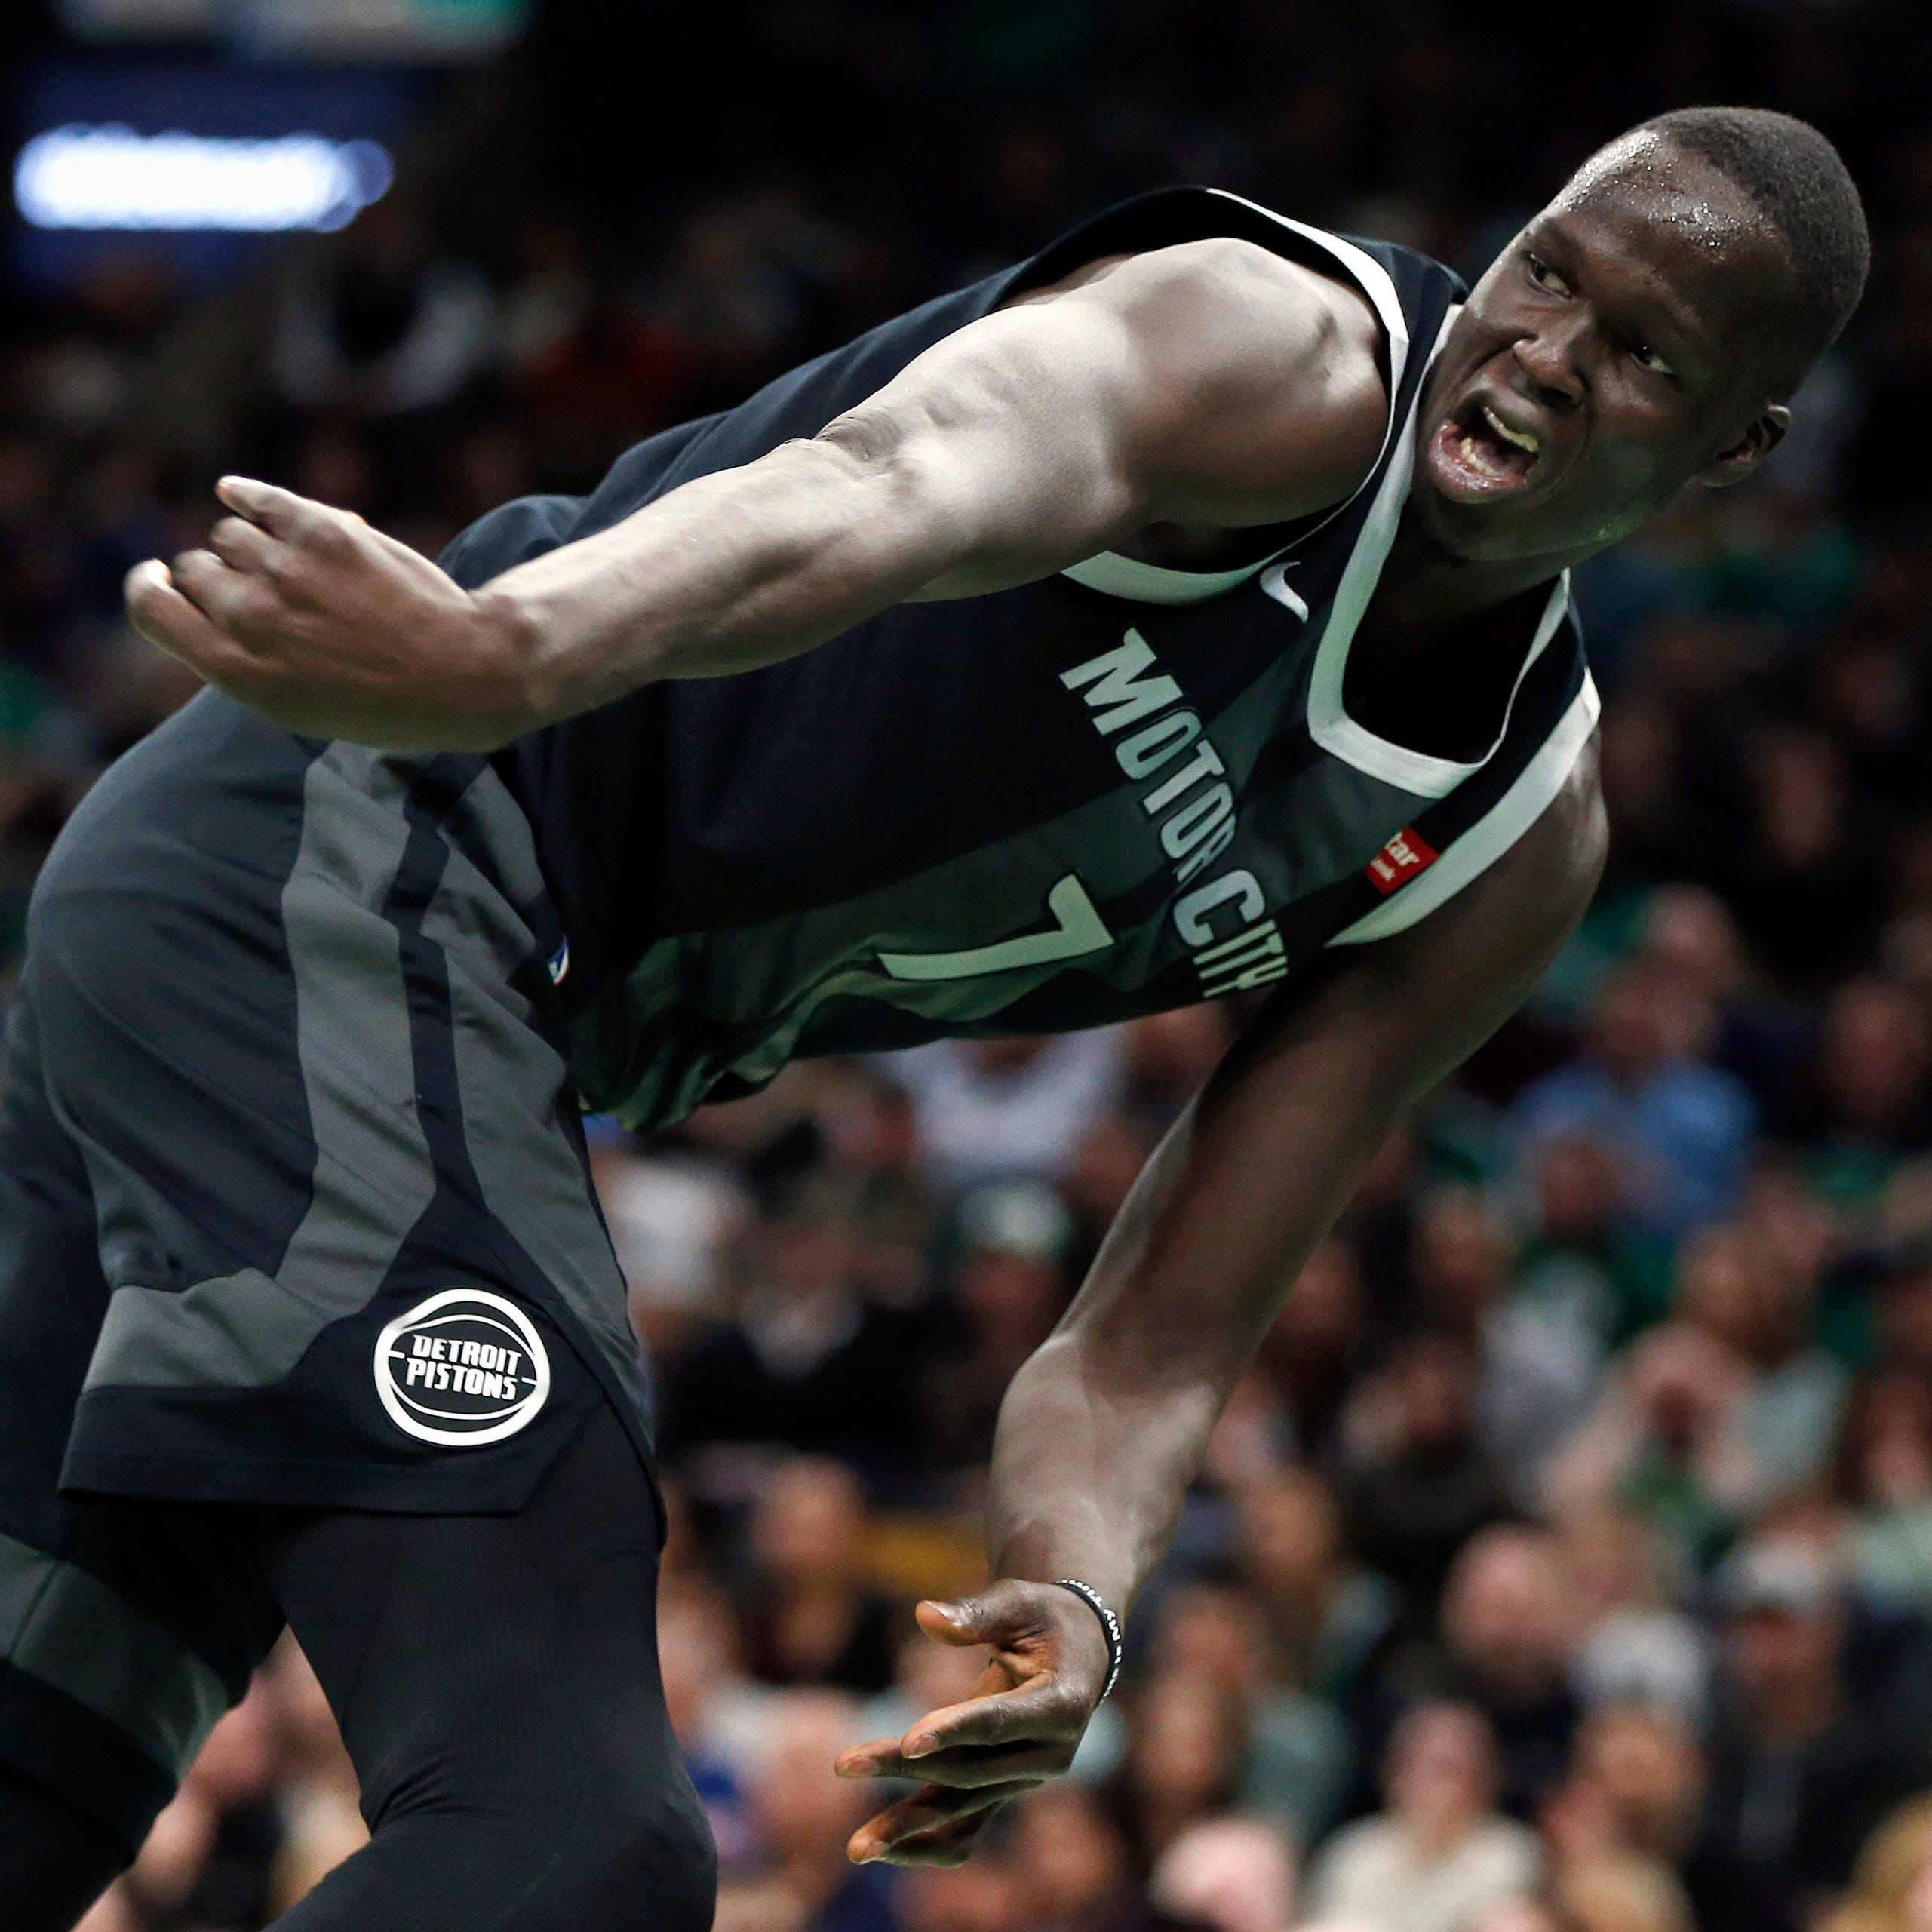 Maker's mark: Go-ahead shot big for Pistons' Thon Maker